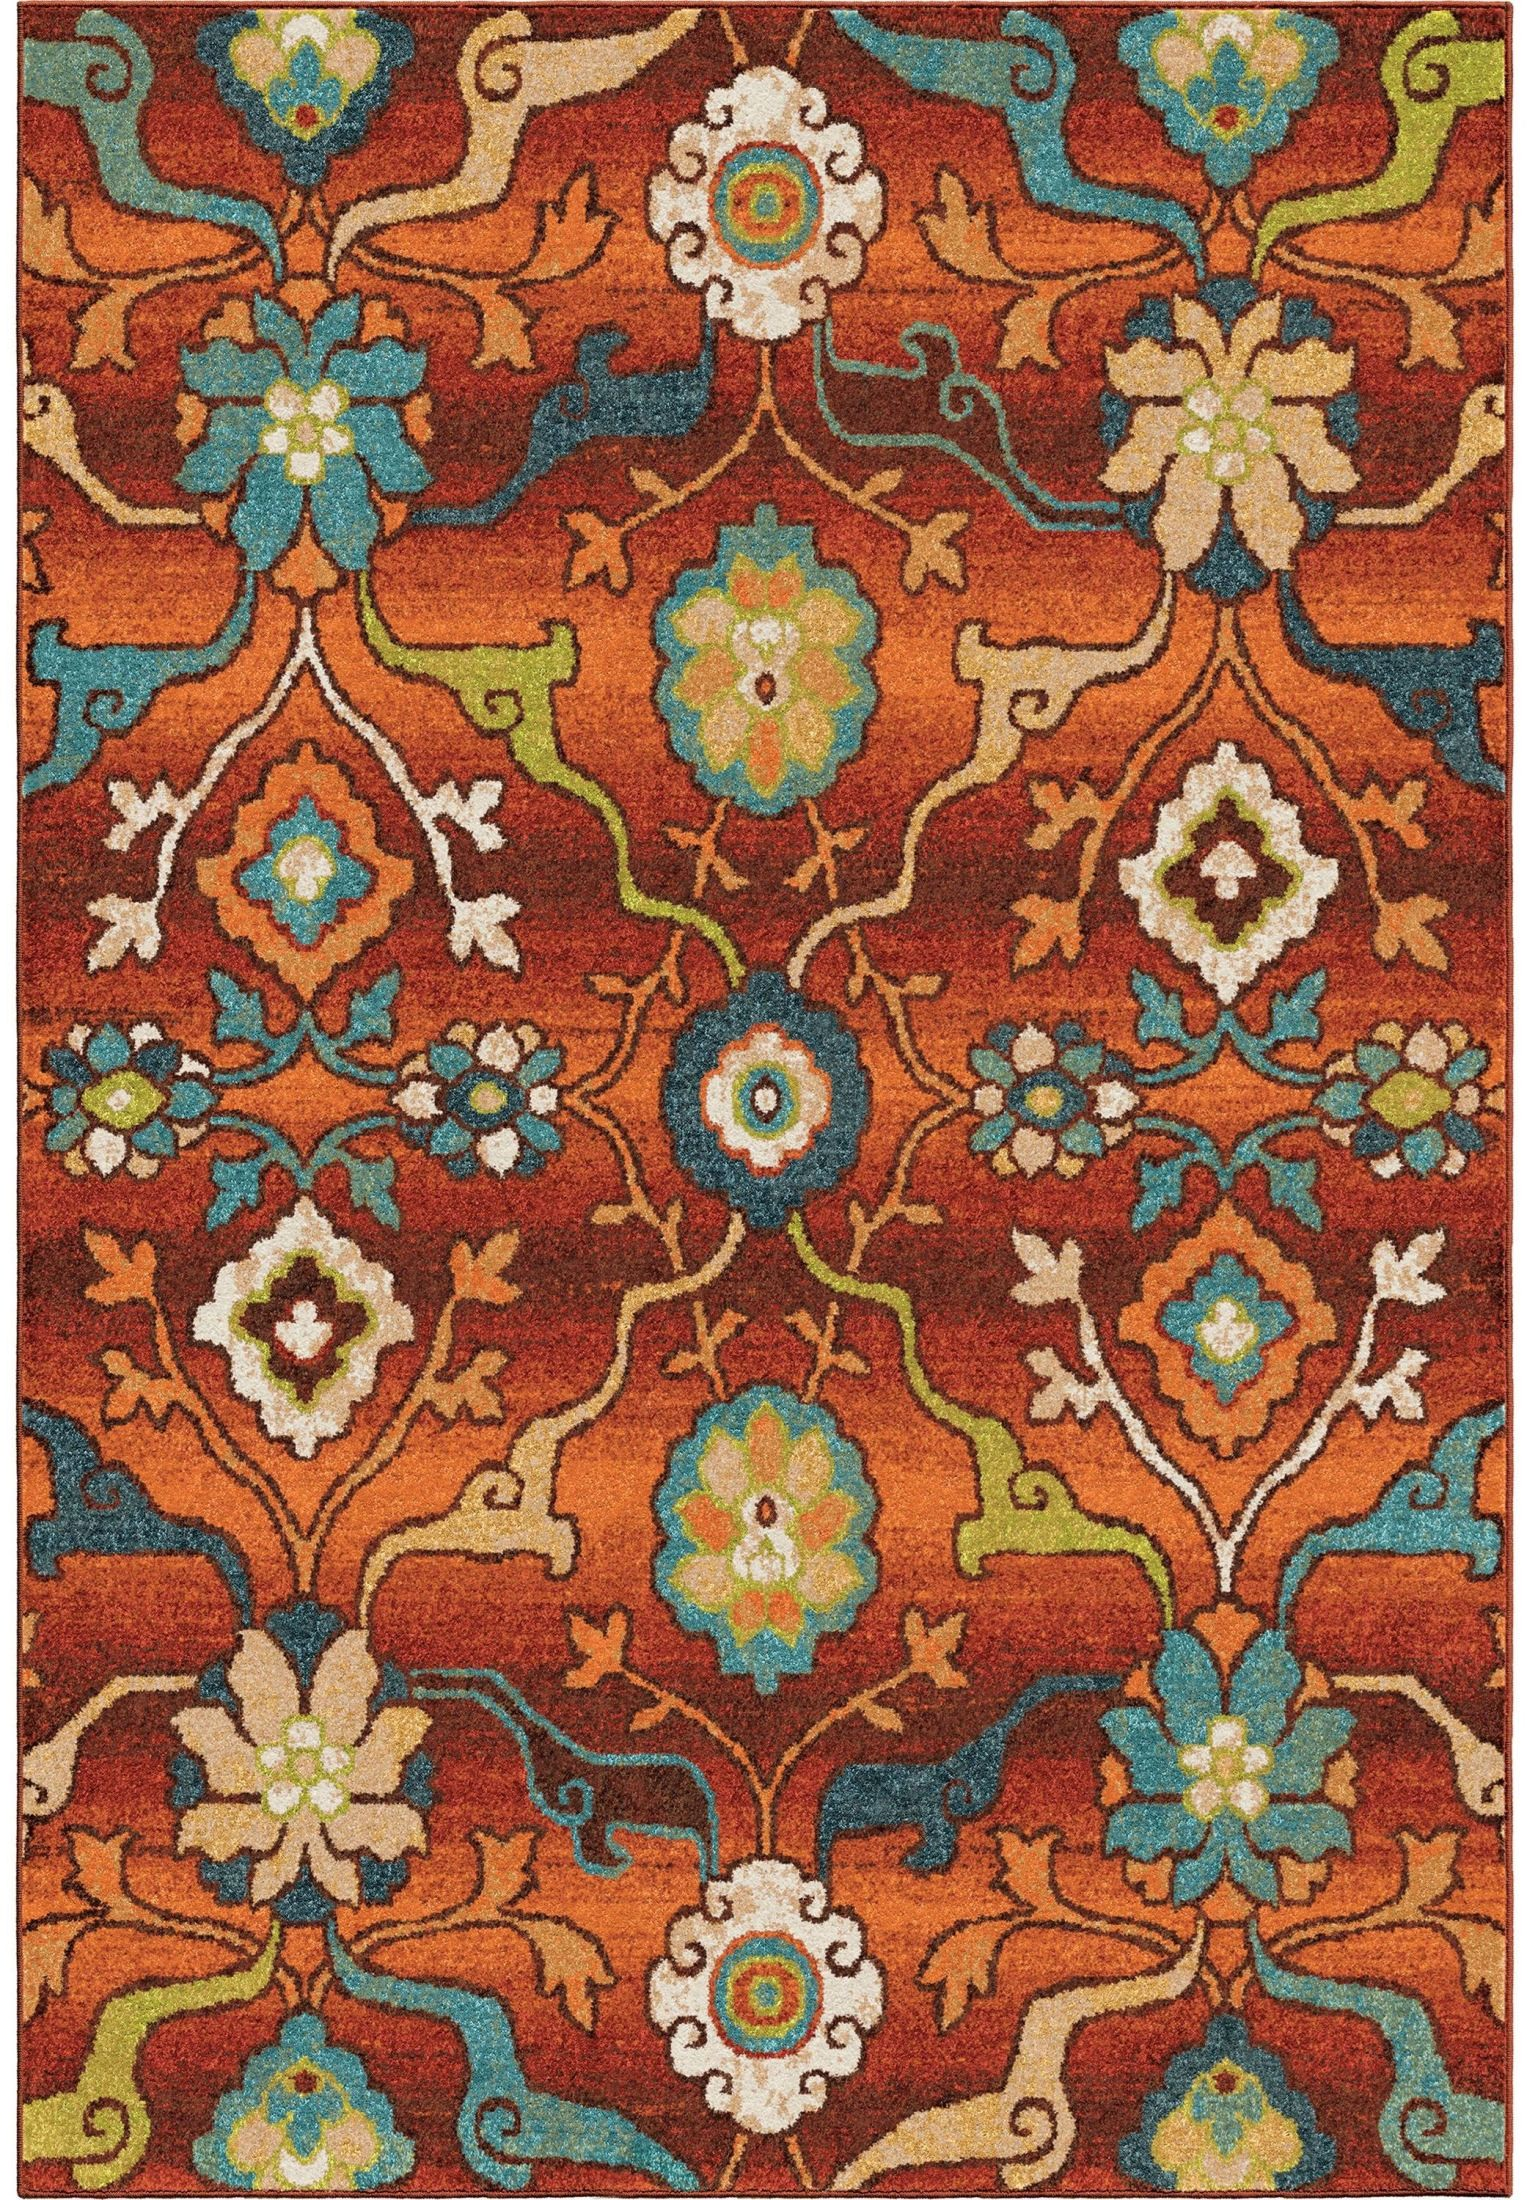 Spoleto Bright Color Floral Tibet Red Small Area Rug From